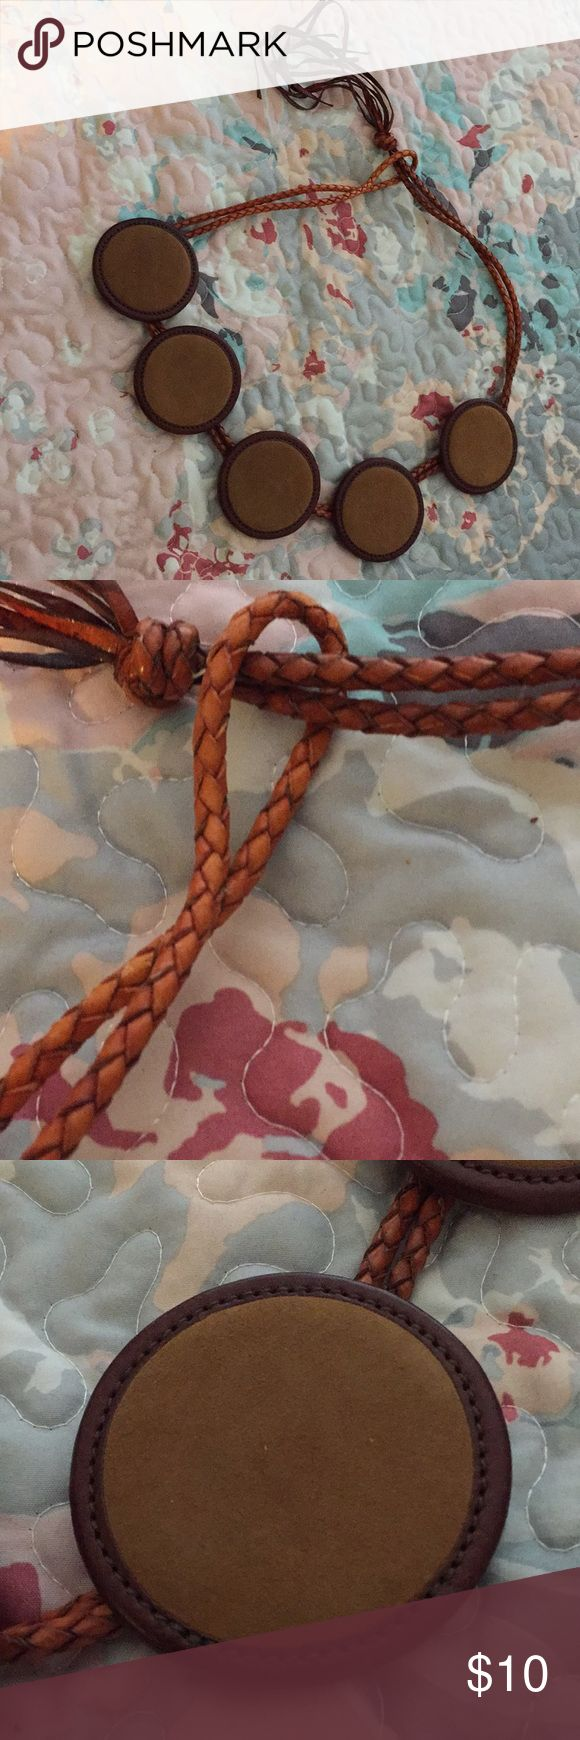 Get the look!  Boho chic leather belt. French High end brand, great quality! Trendy and chic! Used. Natural wear and tear. Faconnable Accessories Belts